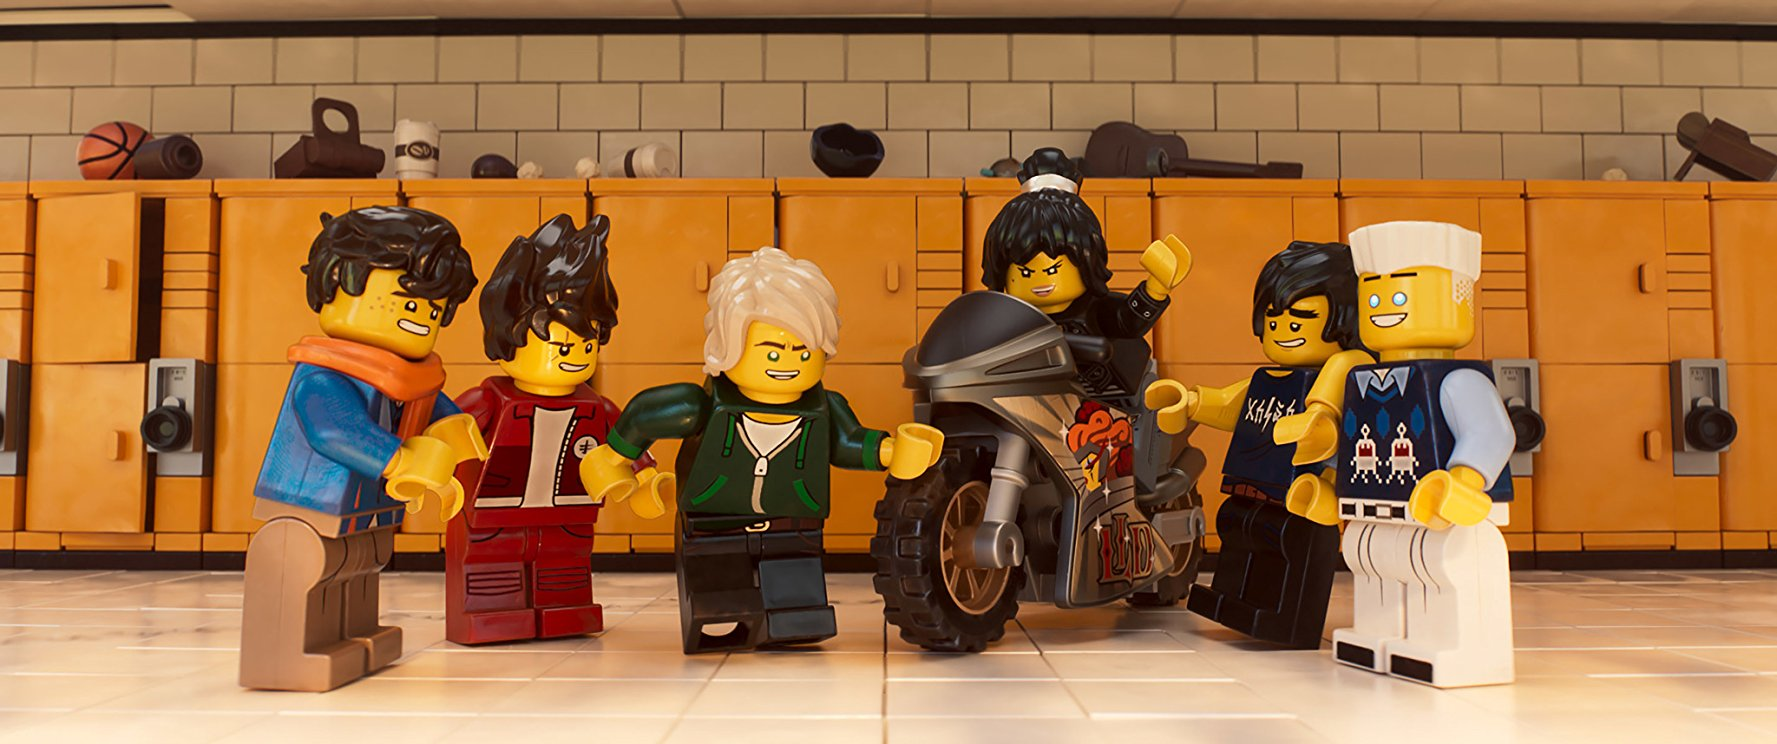 The LEGO Ninjago Movie (After the Campaign Review)